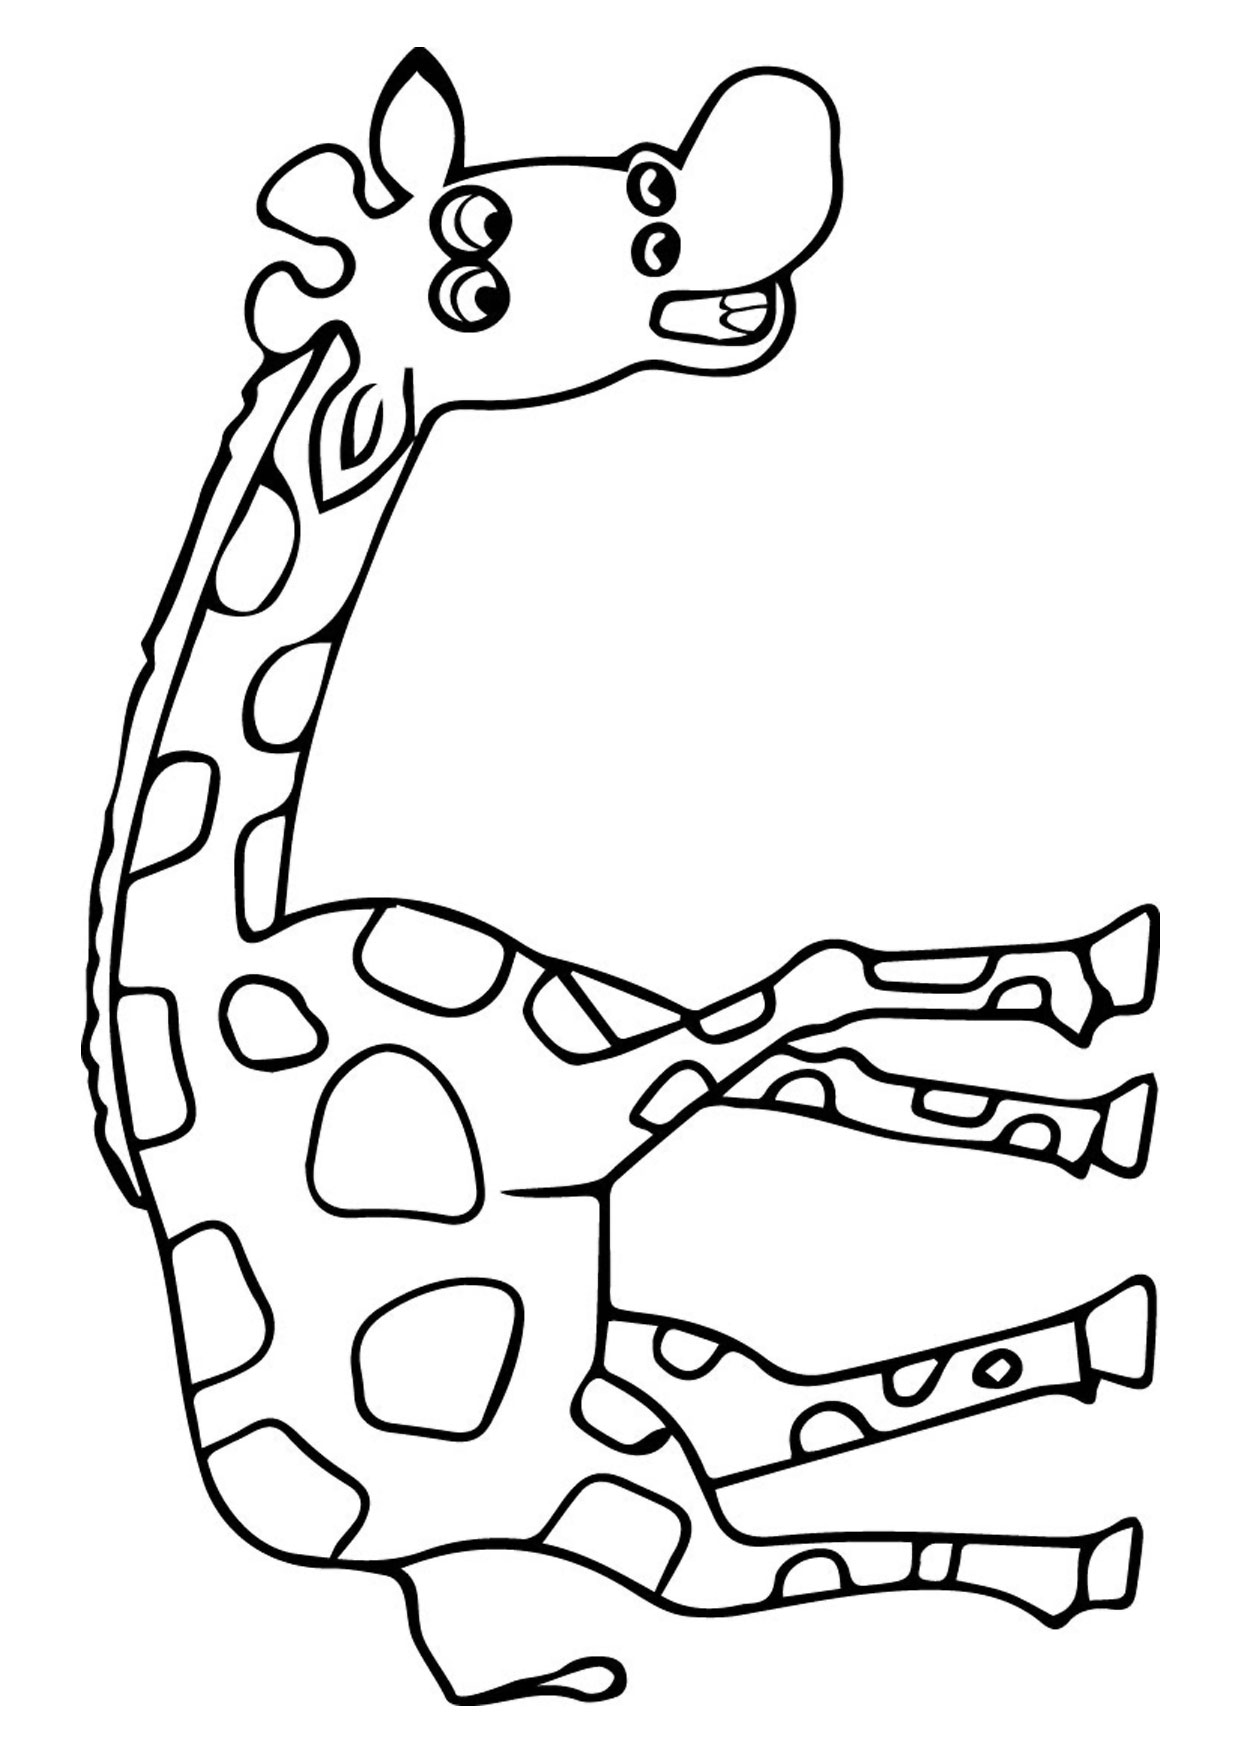 Giraffa in versione cartoon 12